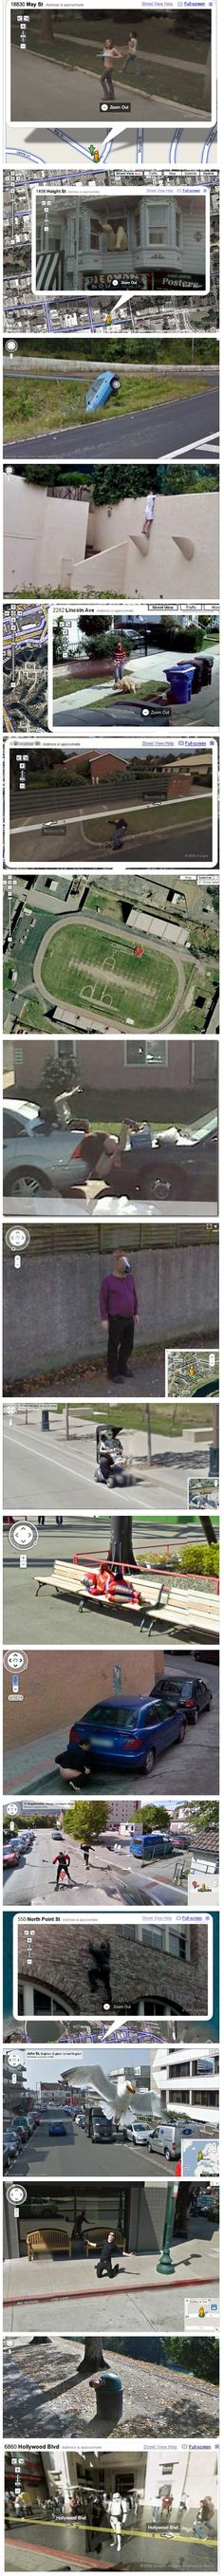 This is what happens when you throw random cameras around the world and start shooting lmao google maps    random cameras around the world and start    shooting.